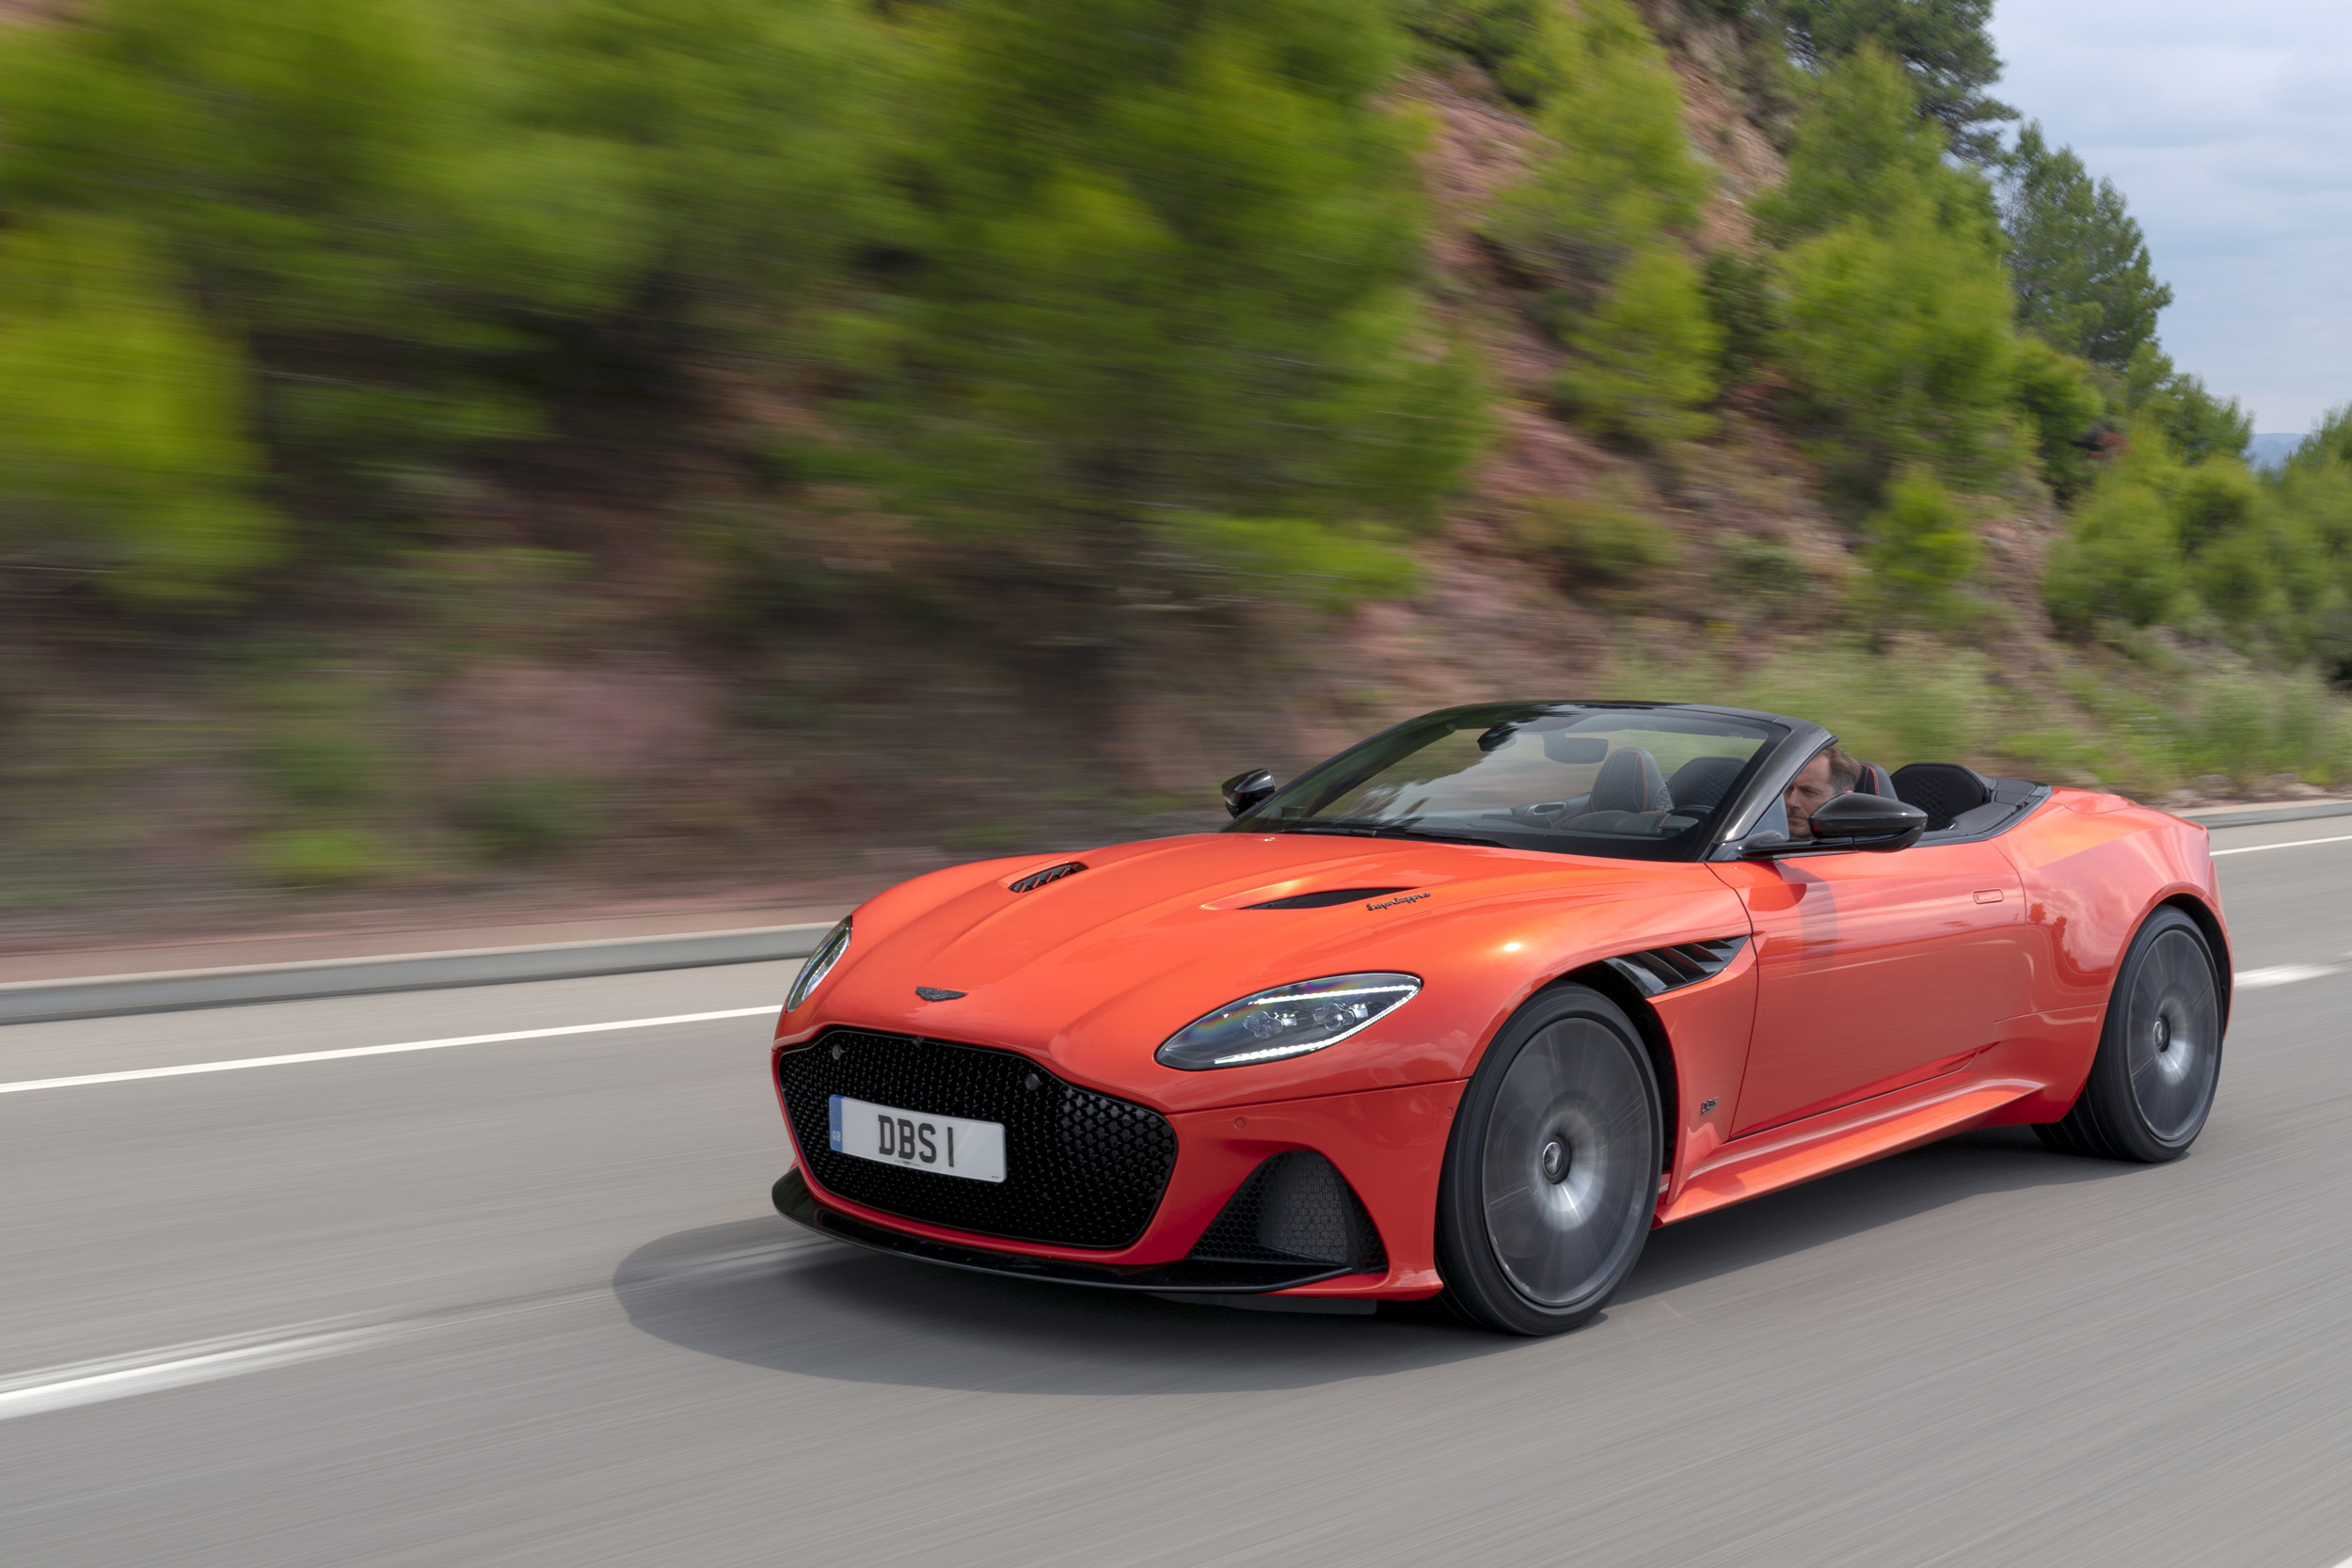 Aston Martin DBS Superleggera Volante - Sportscar of the Year [3]